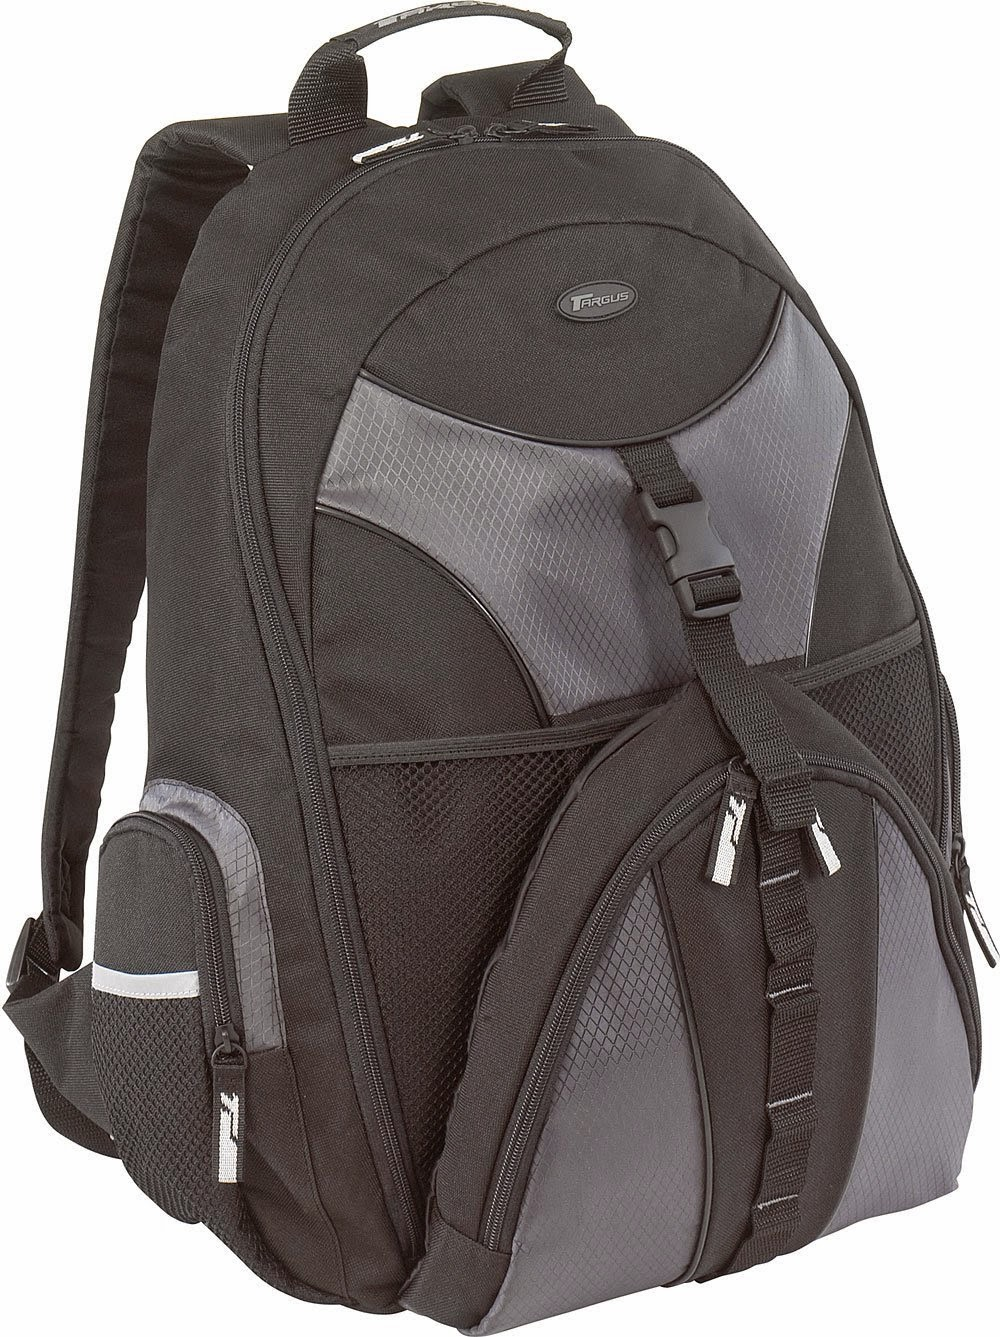 Buy Targus TSB007US Sport Backpack For 15.6-inch Laptop (Black/Grey) for Rs.749 at Amazon